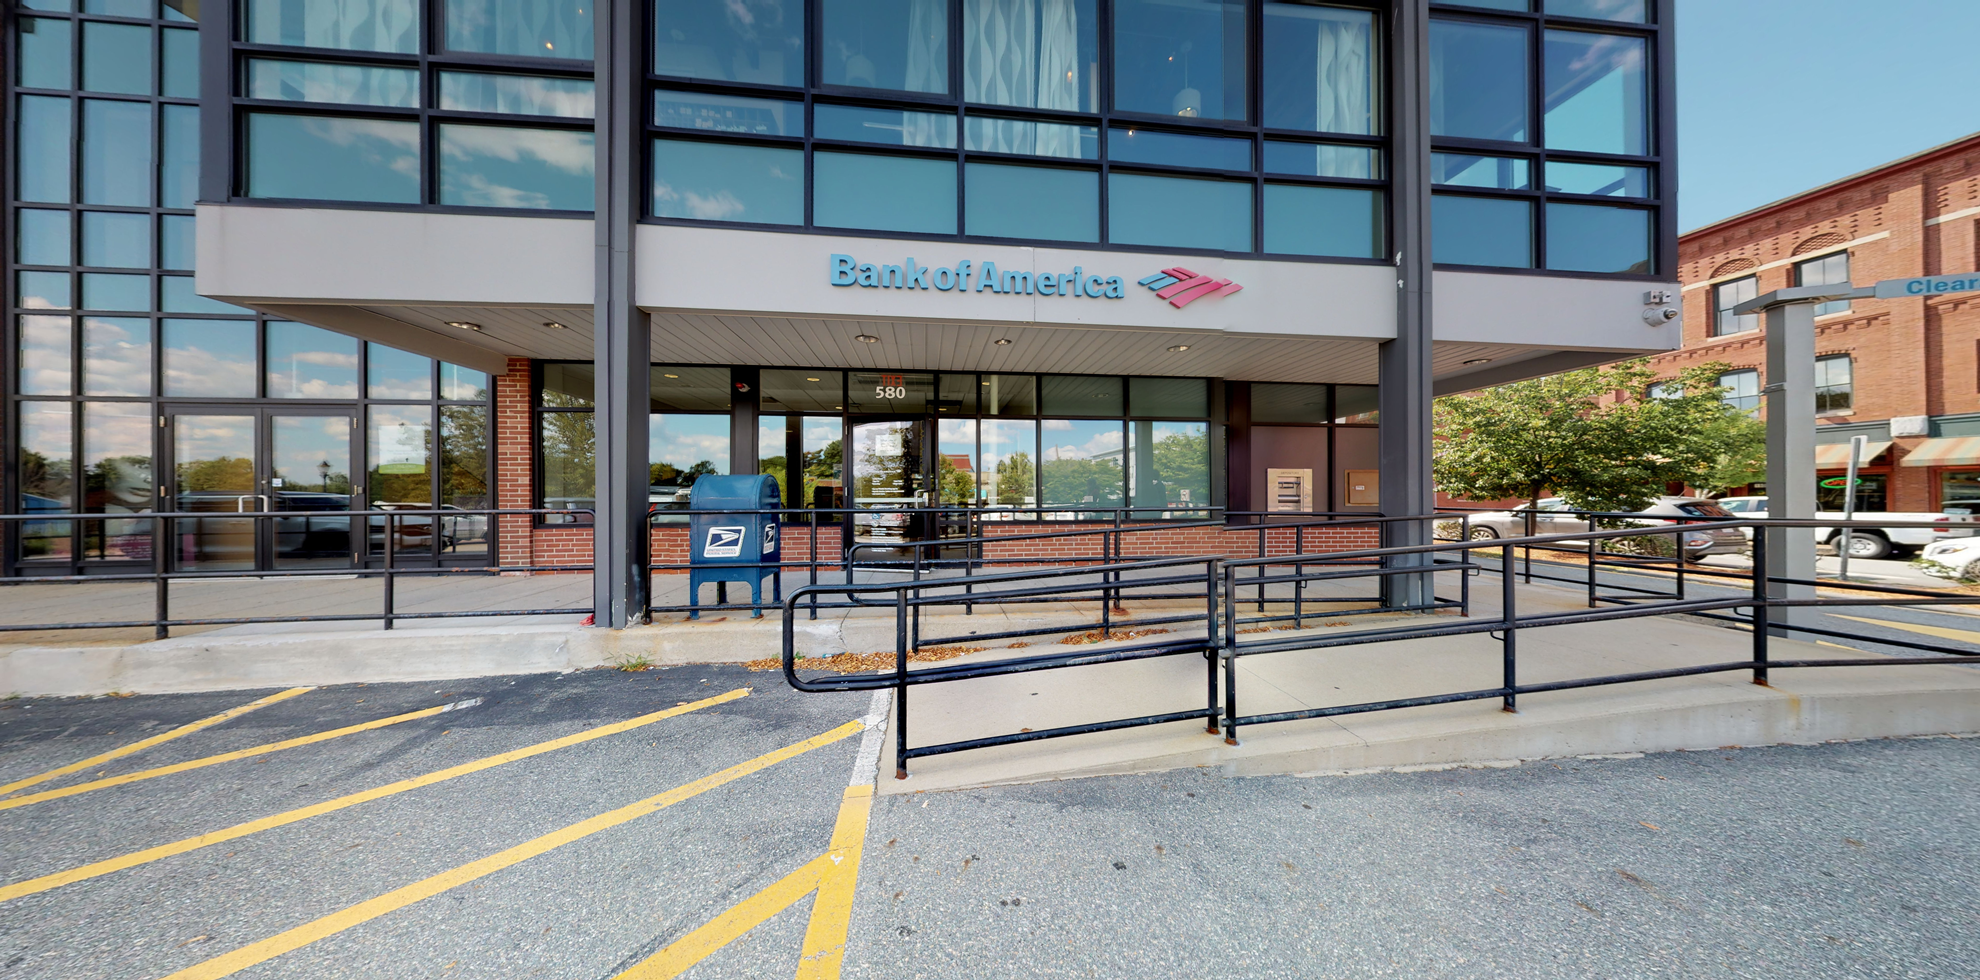 Bank of America financial center with drive-thru ATM   580 Main St STE 103, Reading, MA 01867